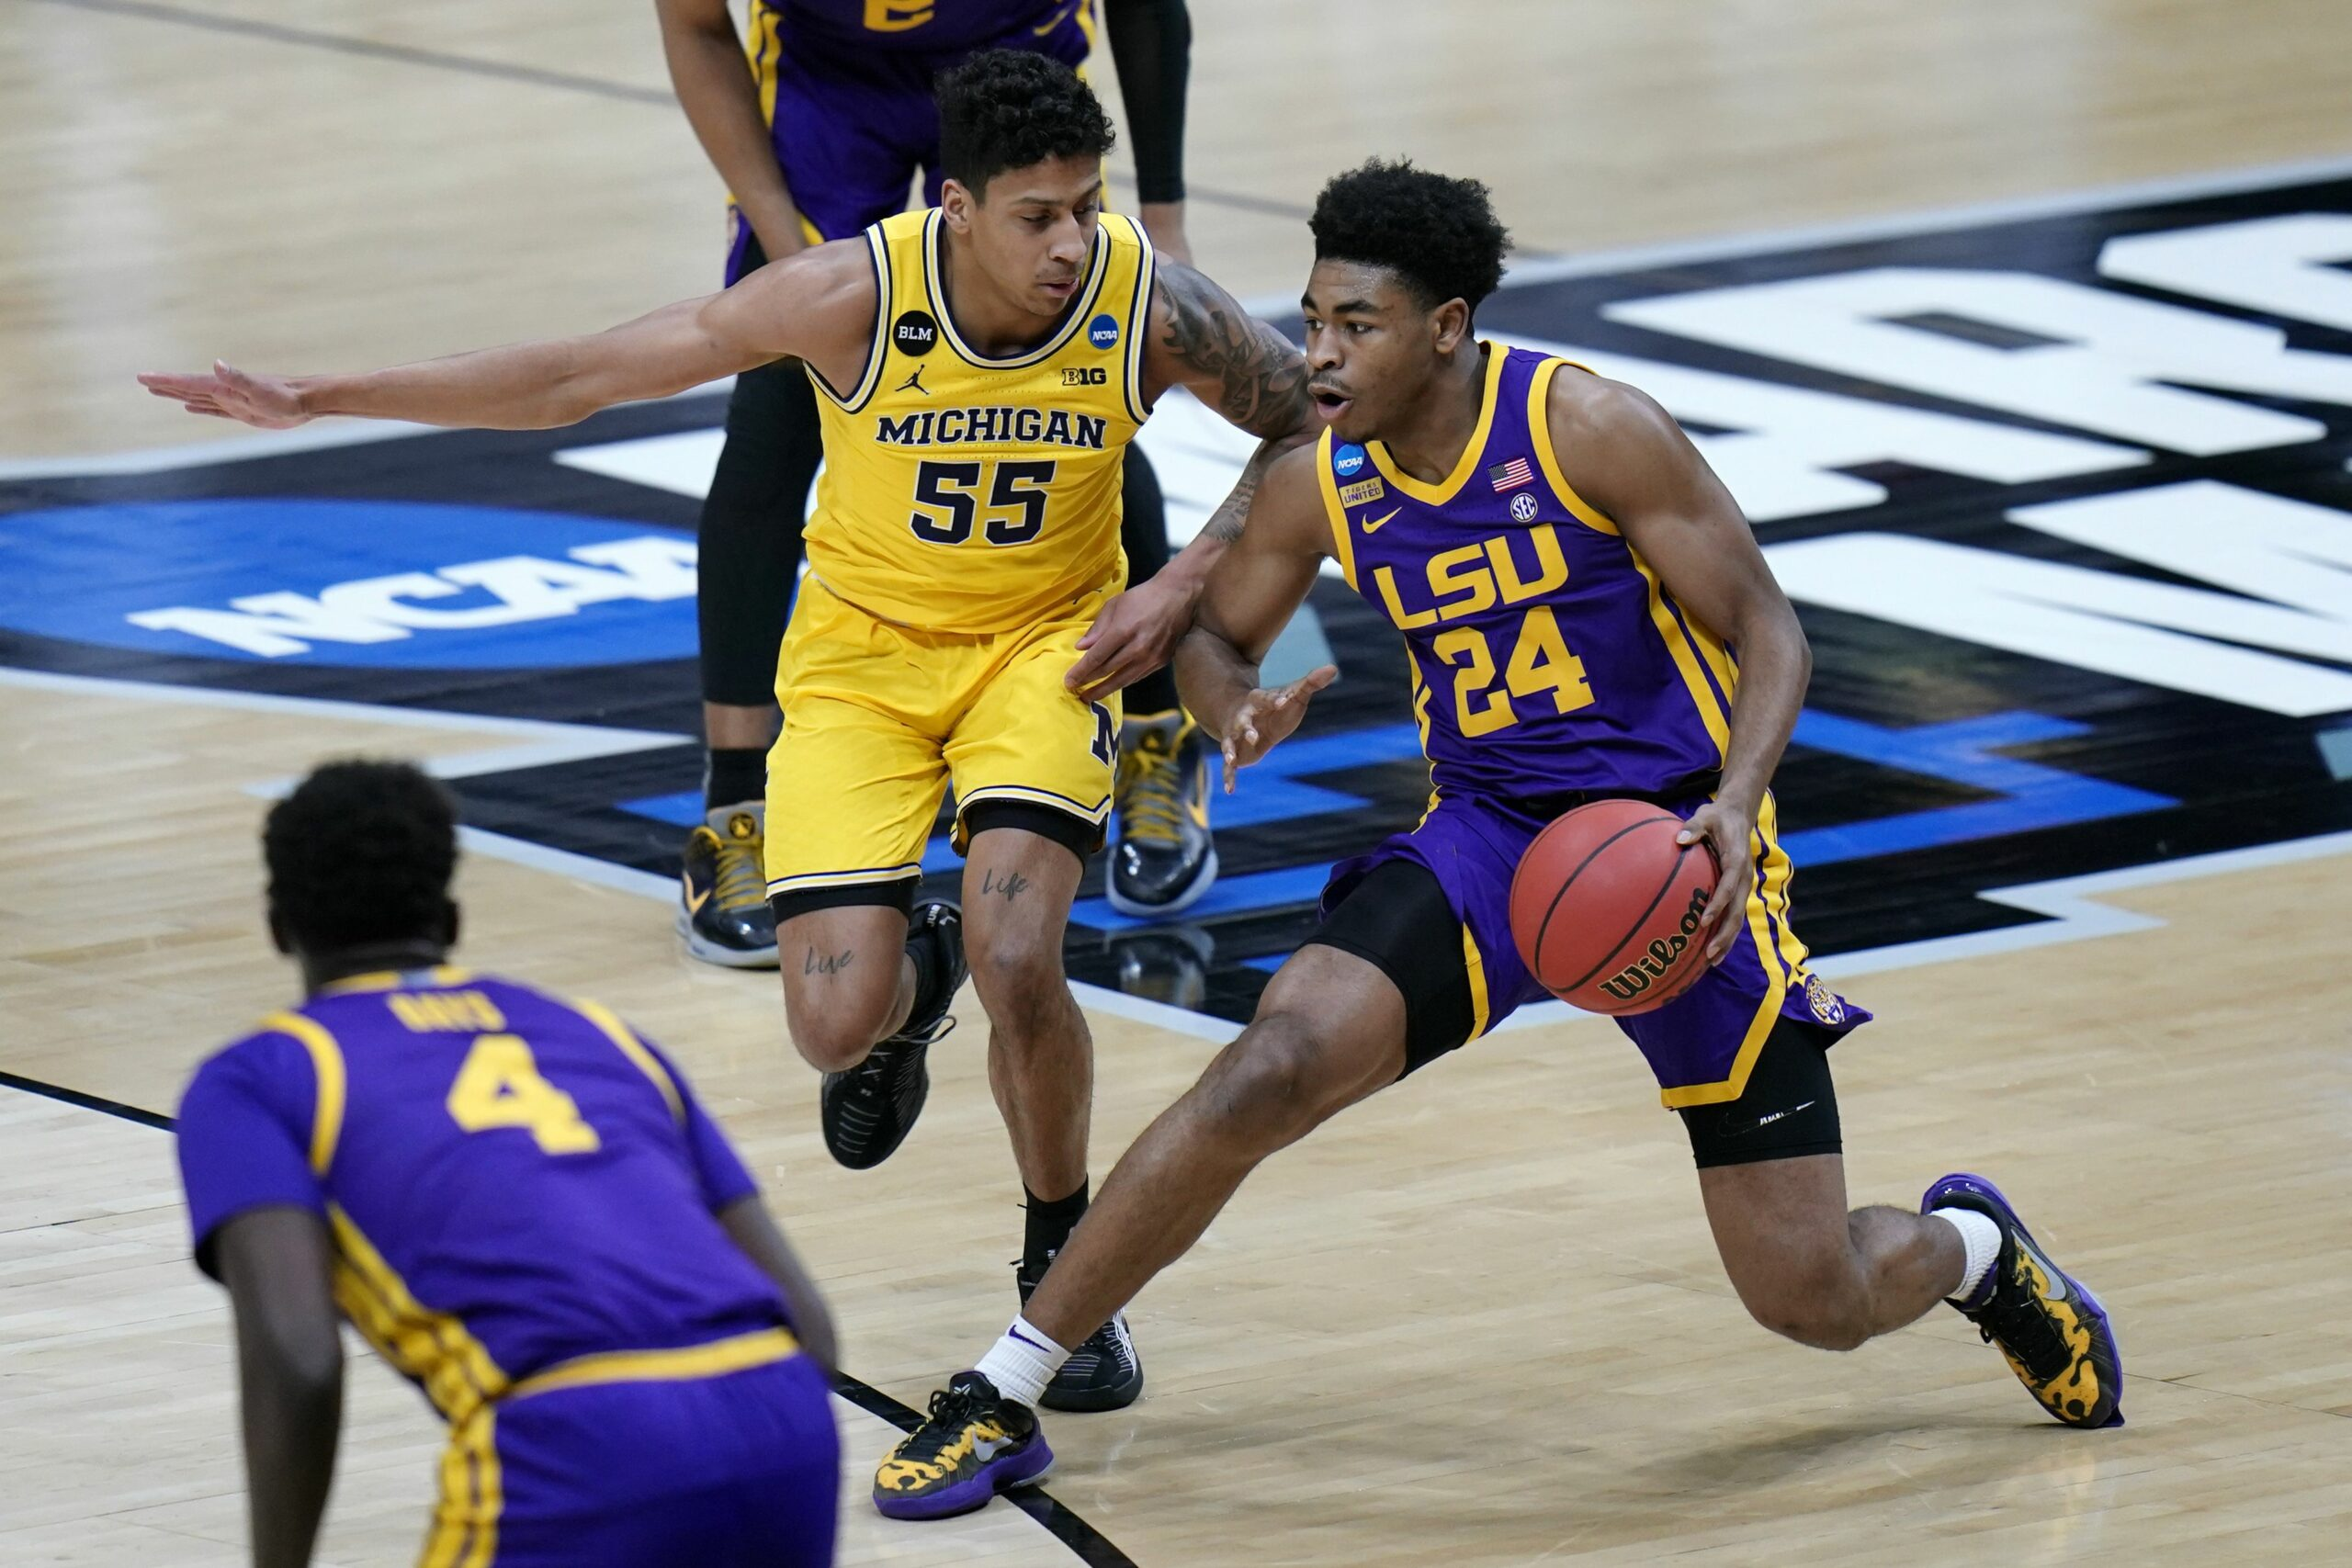 NCAA Tournament: Michigan basketball moves to the Sweet 16 with 86-78 win over the LSU